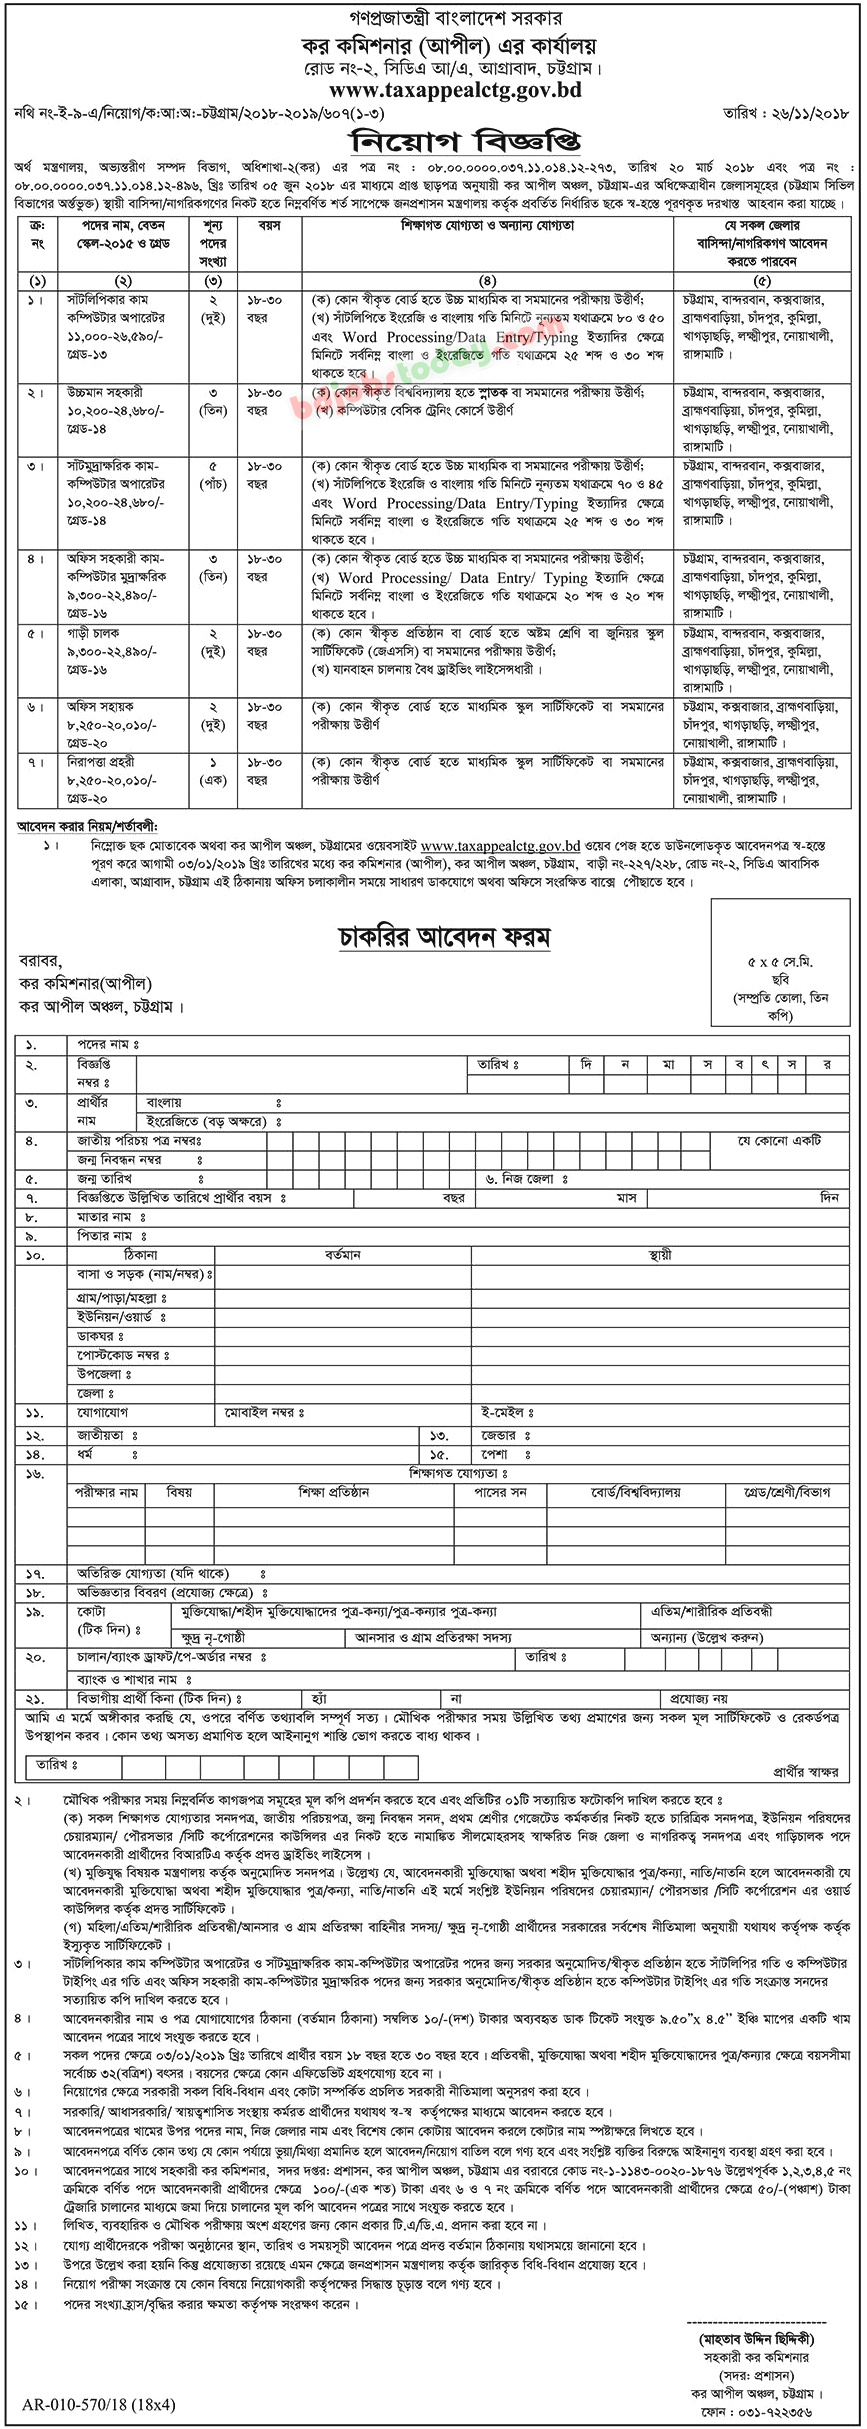 Office of Tax Commissioner (Appeal), Chittagong jobs